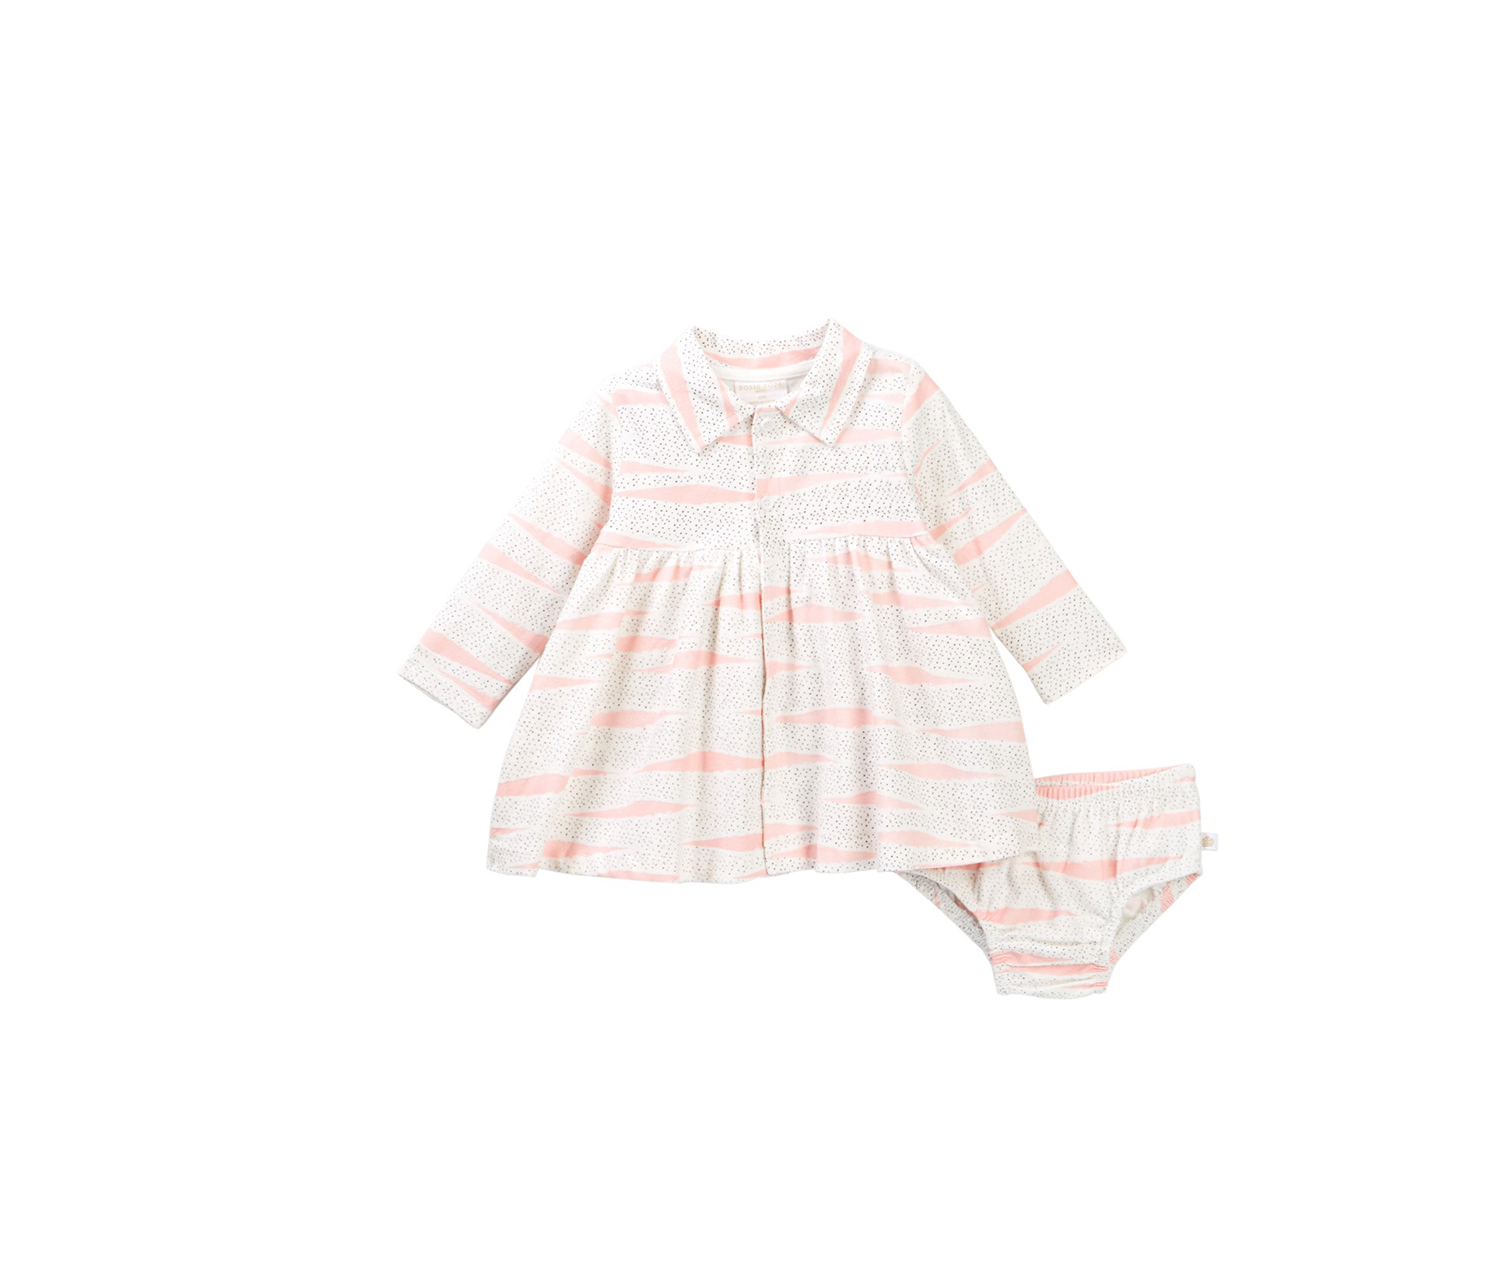 Toddlers Girl's Flannel Dress with Panty, White/Pink